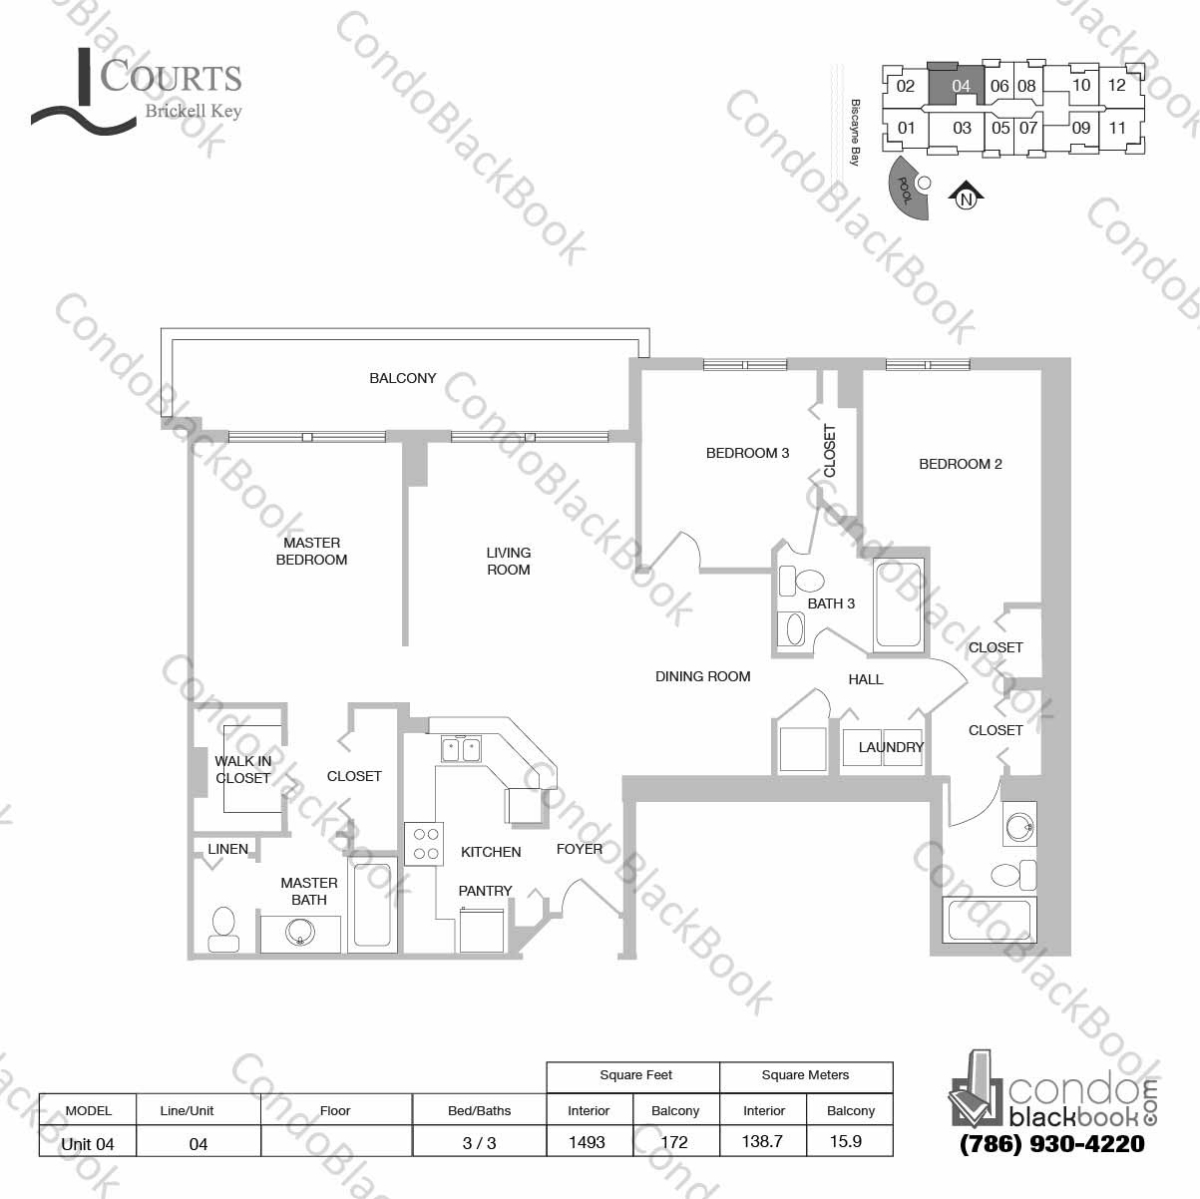 Floor plan for Courts Condo Brickell Key Brickell Key Miami, model Unit 04, line 04, 3 / 3 bedrooms, 1493 sq ft